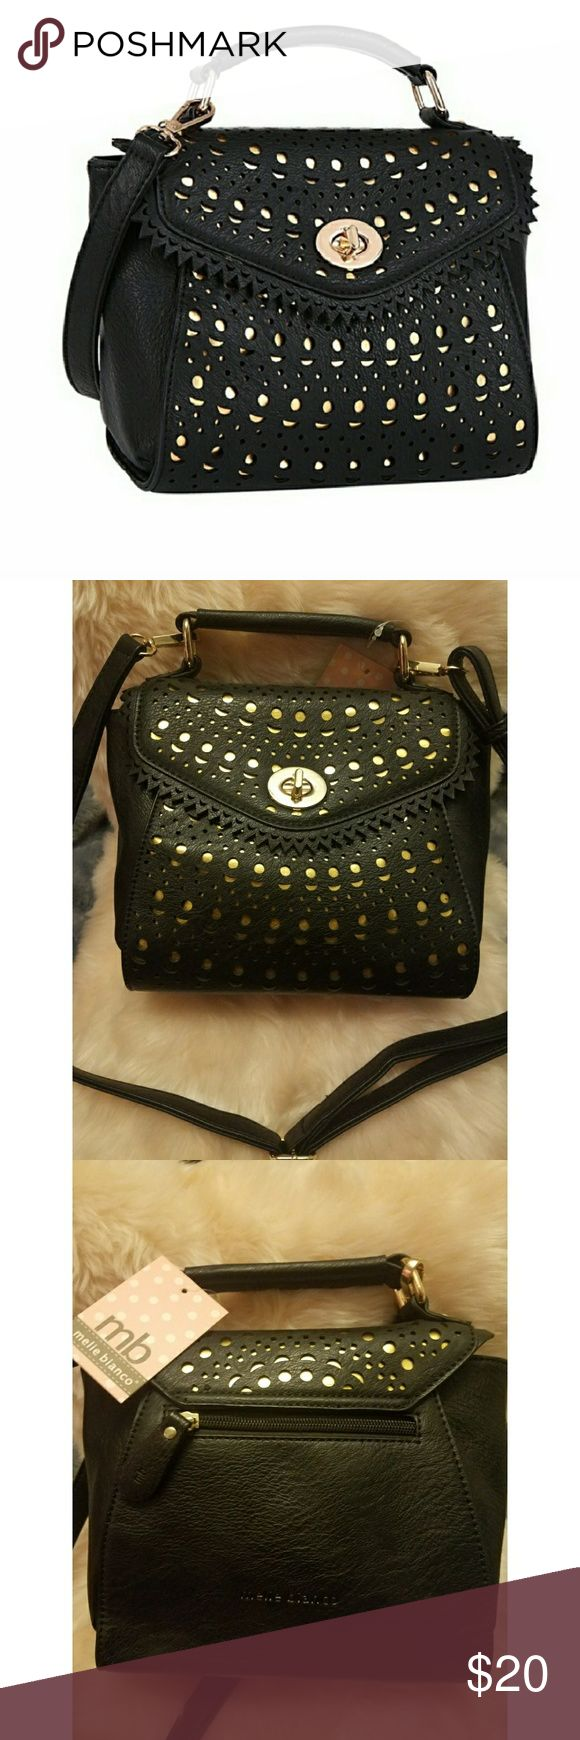 Black Melie Bianco purse Black and gold detailing Bags